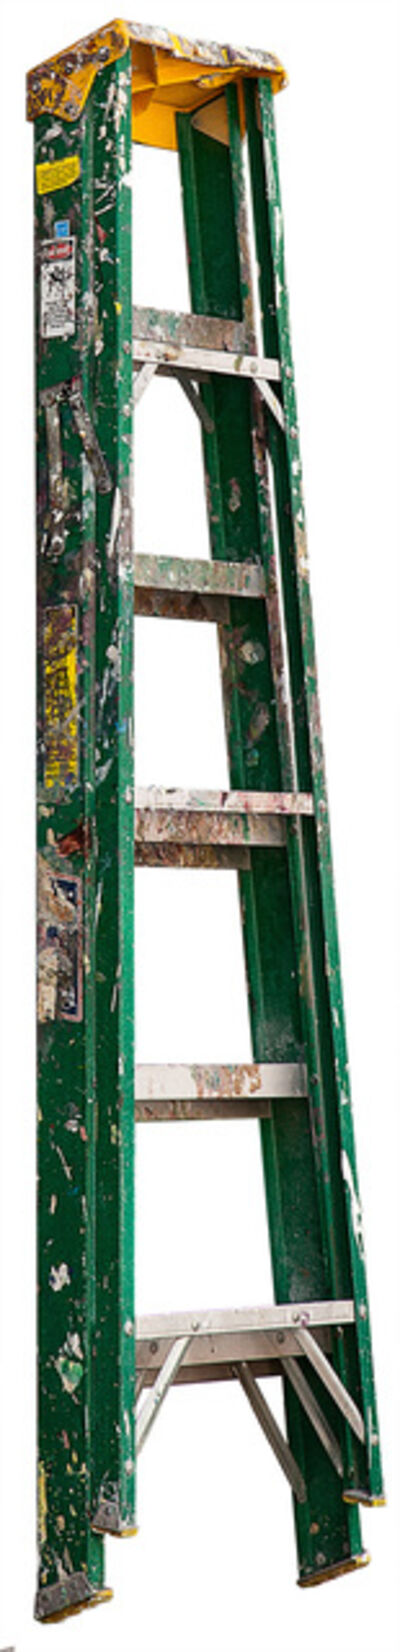 Jennifer Williams, 'Medium Folding Ladder: Green with Yellow Top and Paint', 2013